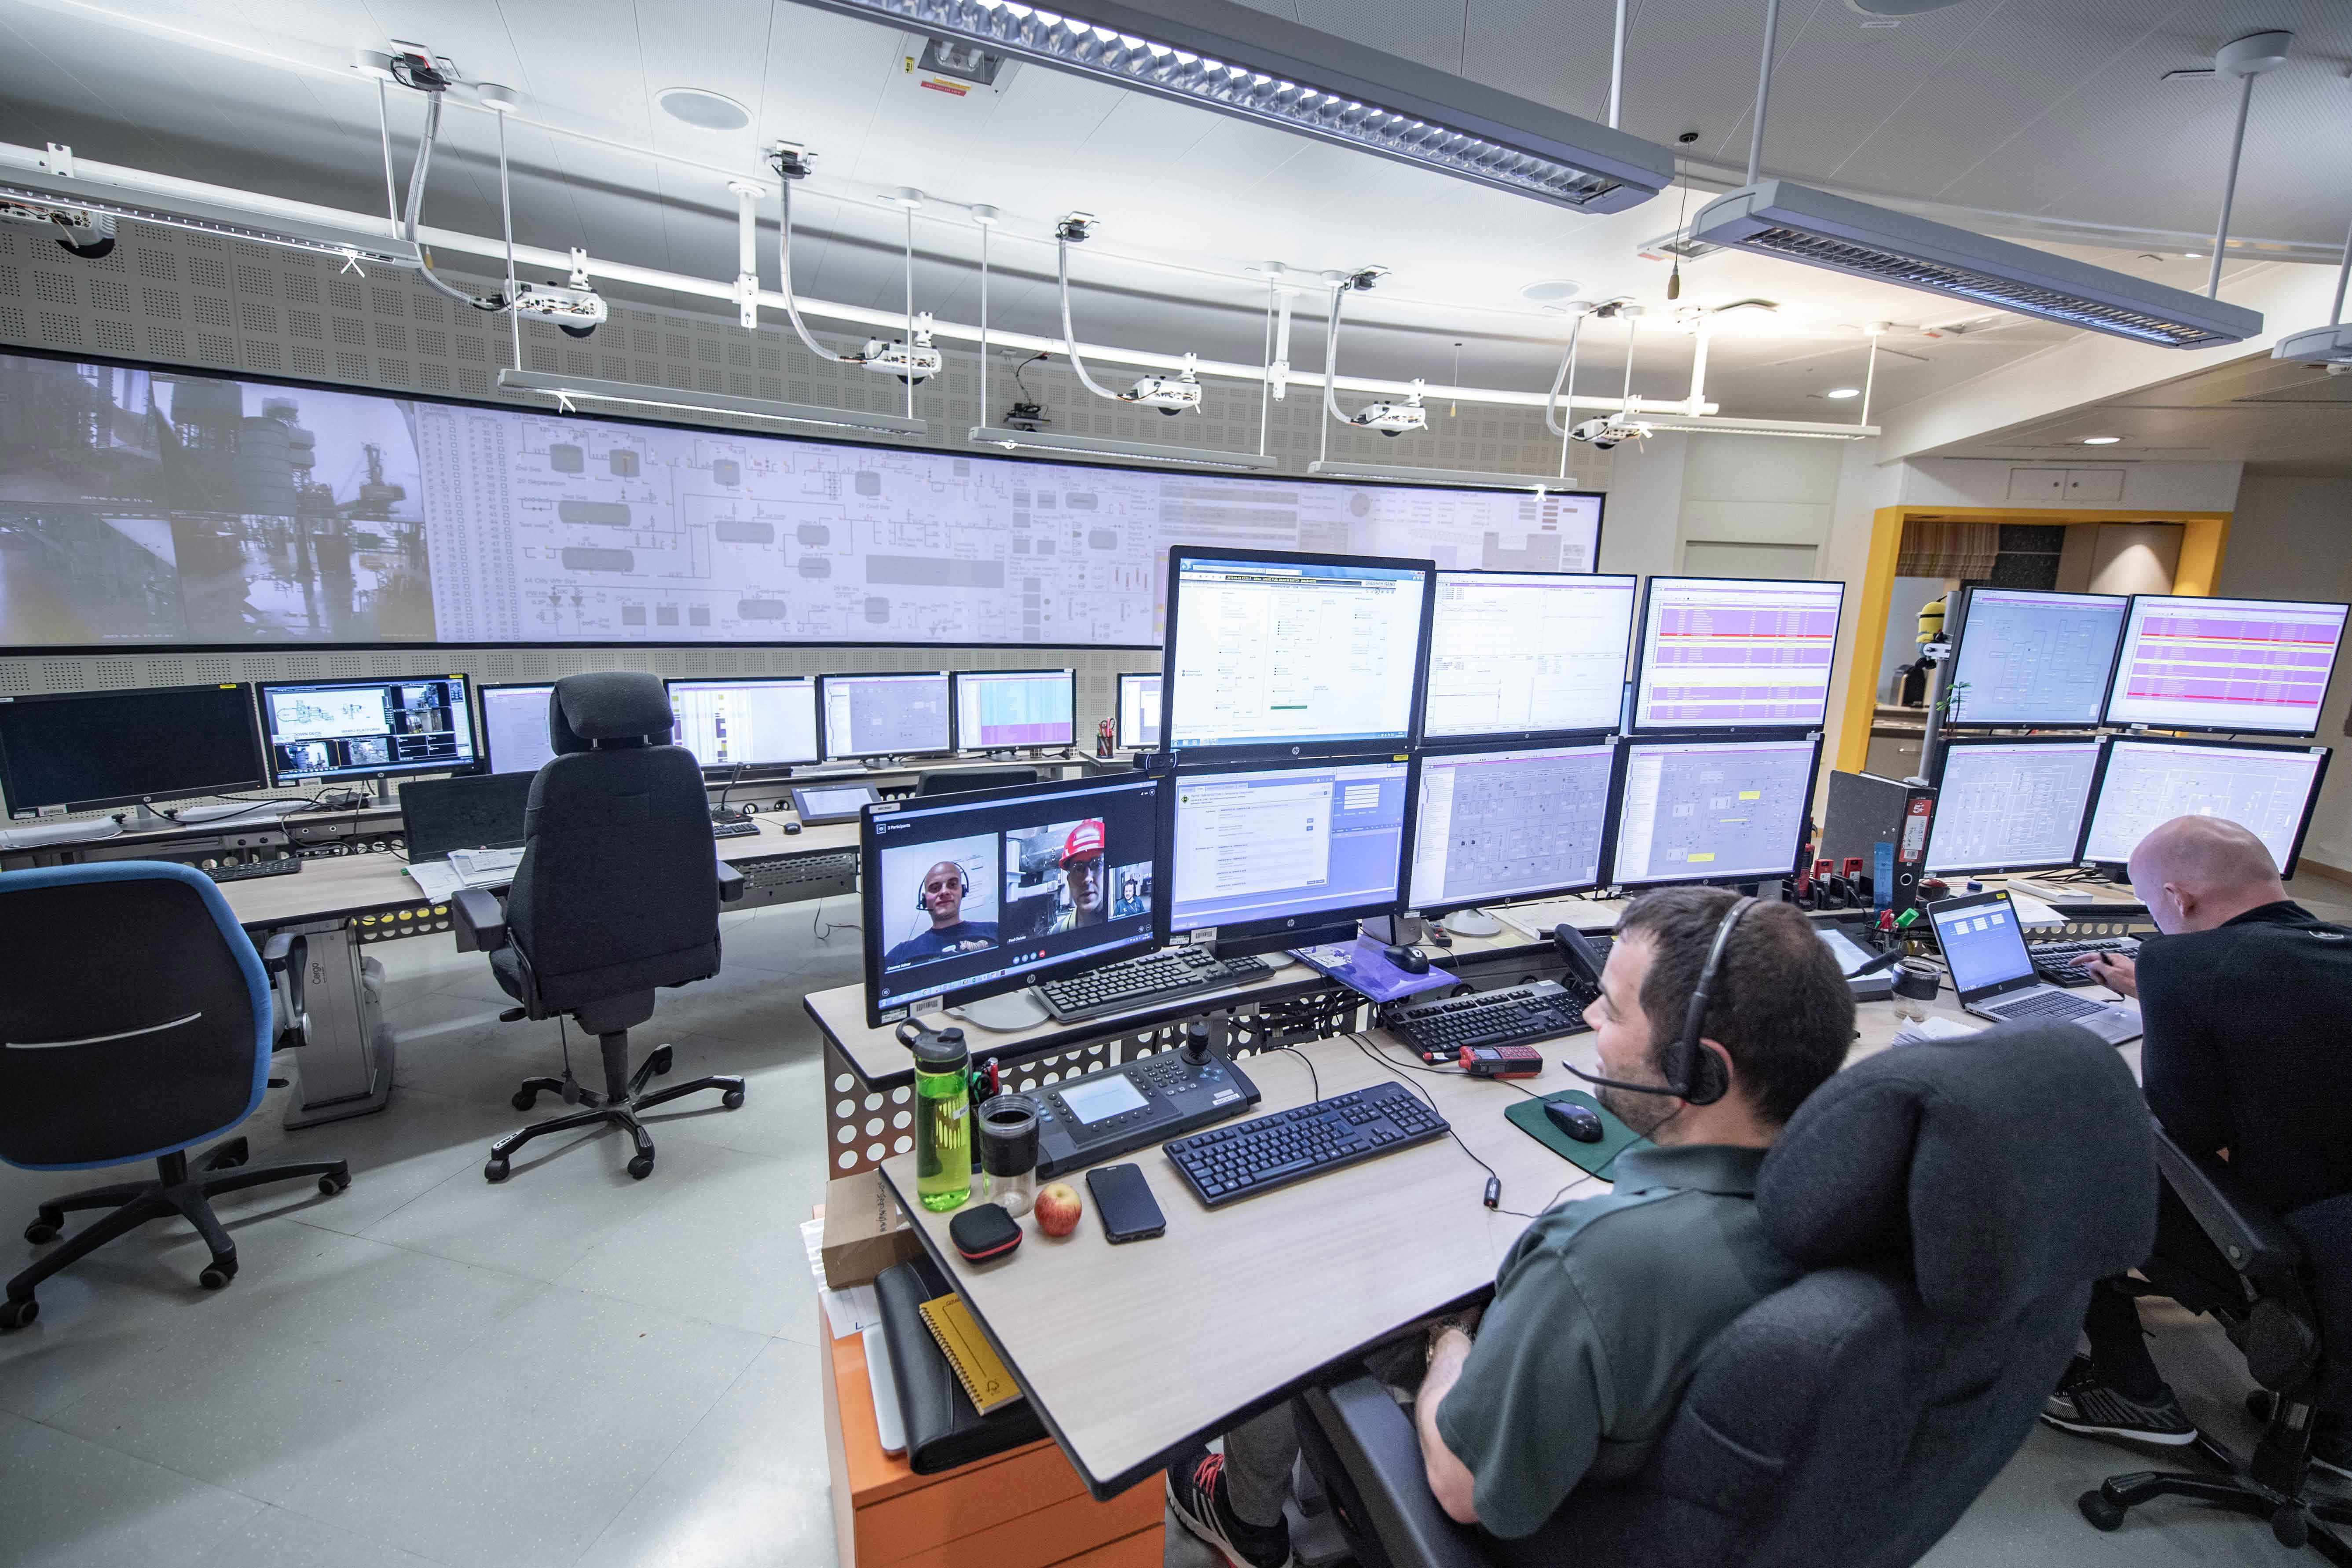 Control room of an Equinor offshore platform